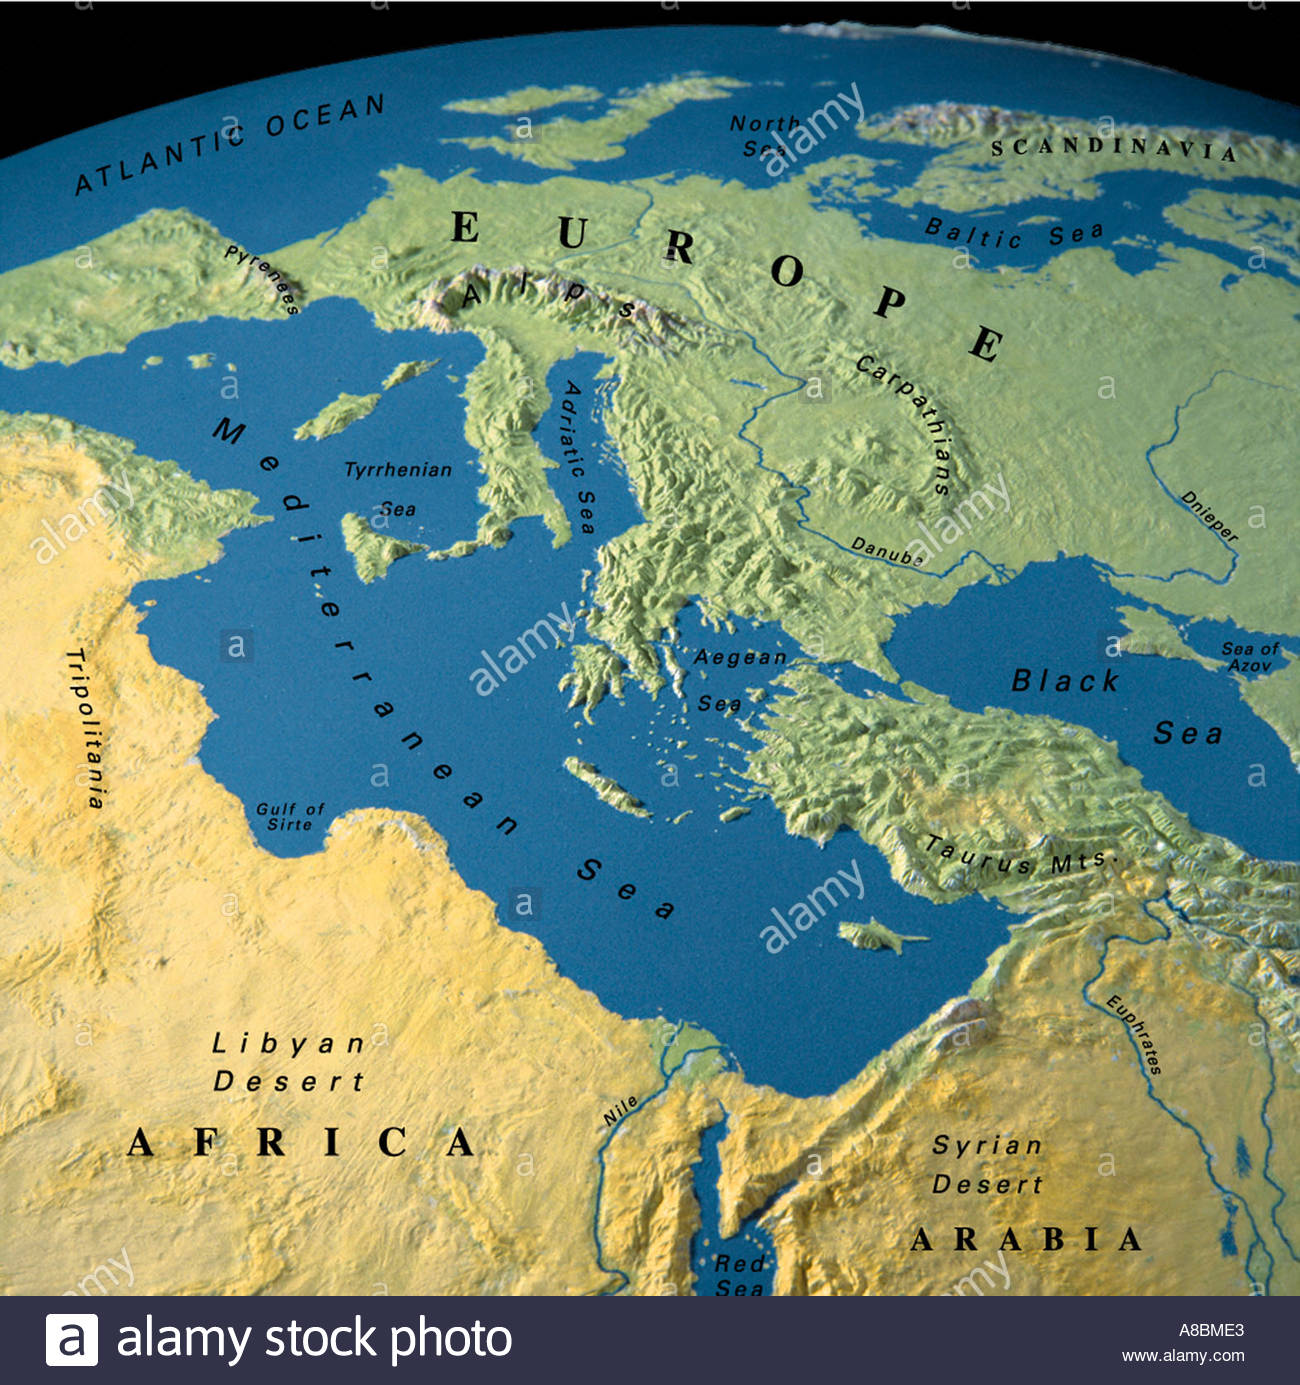 globe map maps Europe Africa Middle East Stock Photo: 3934434 - Alamy